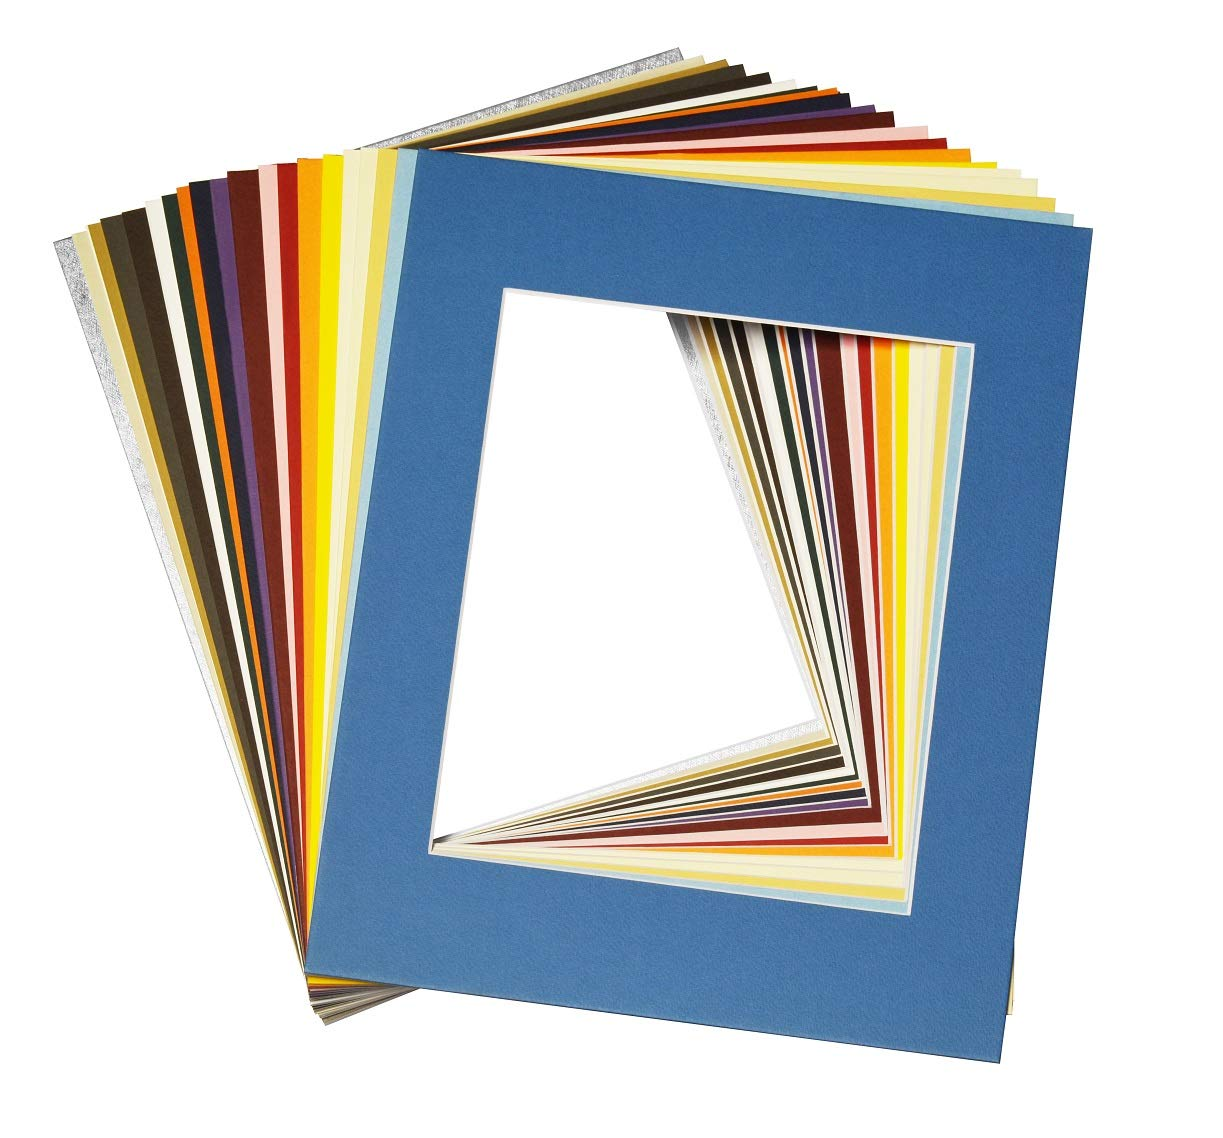 Mat Board Center, Pack of 20 11x14 MIXED COLORS White Core Picture Mats for 8x10 Photos by MBC MAT BOARD CENTER